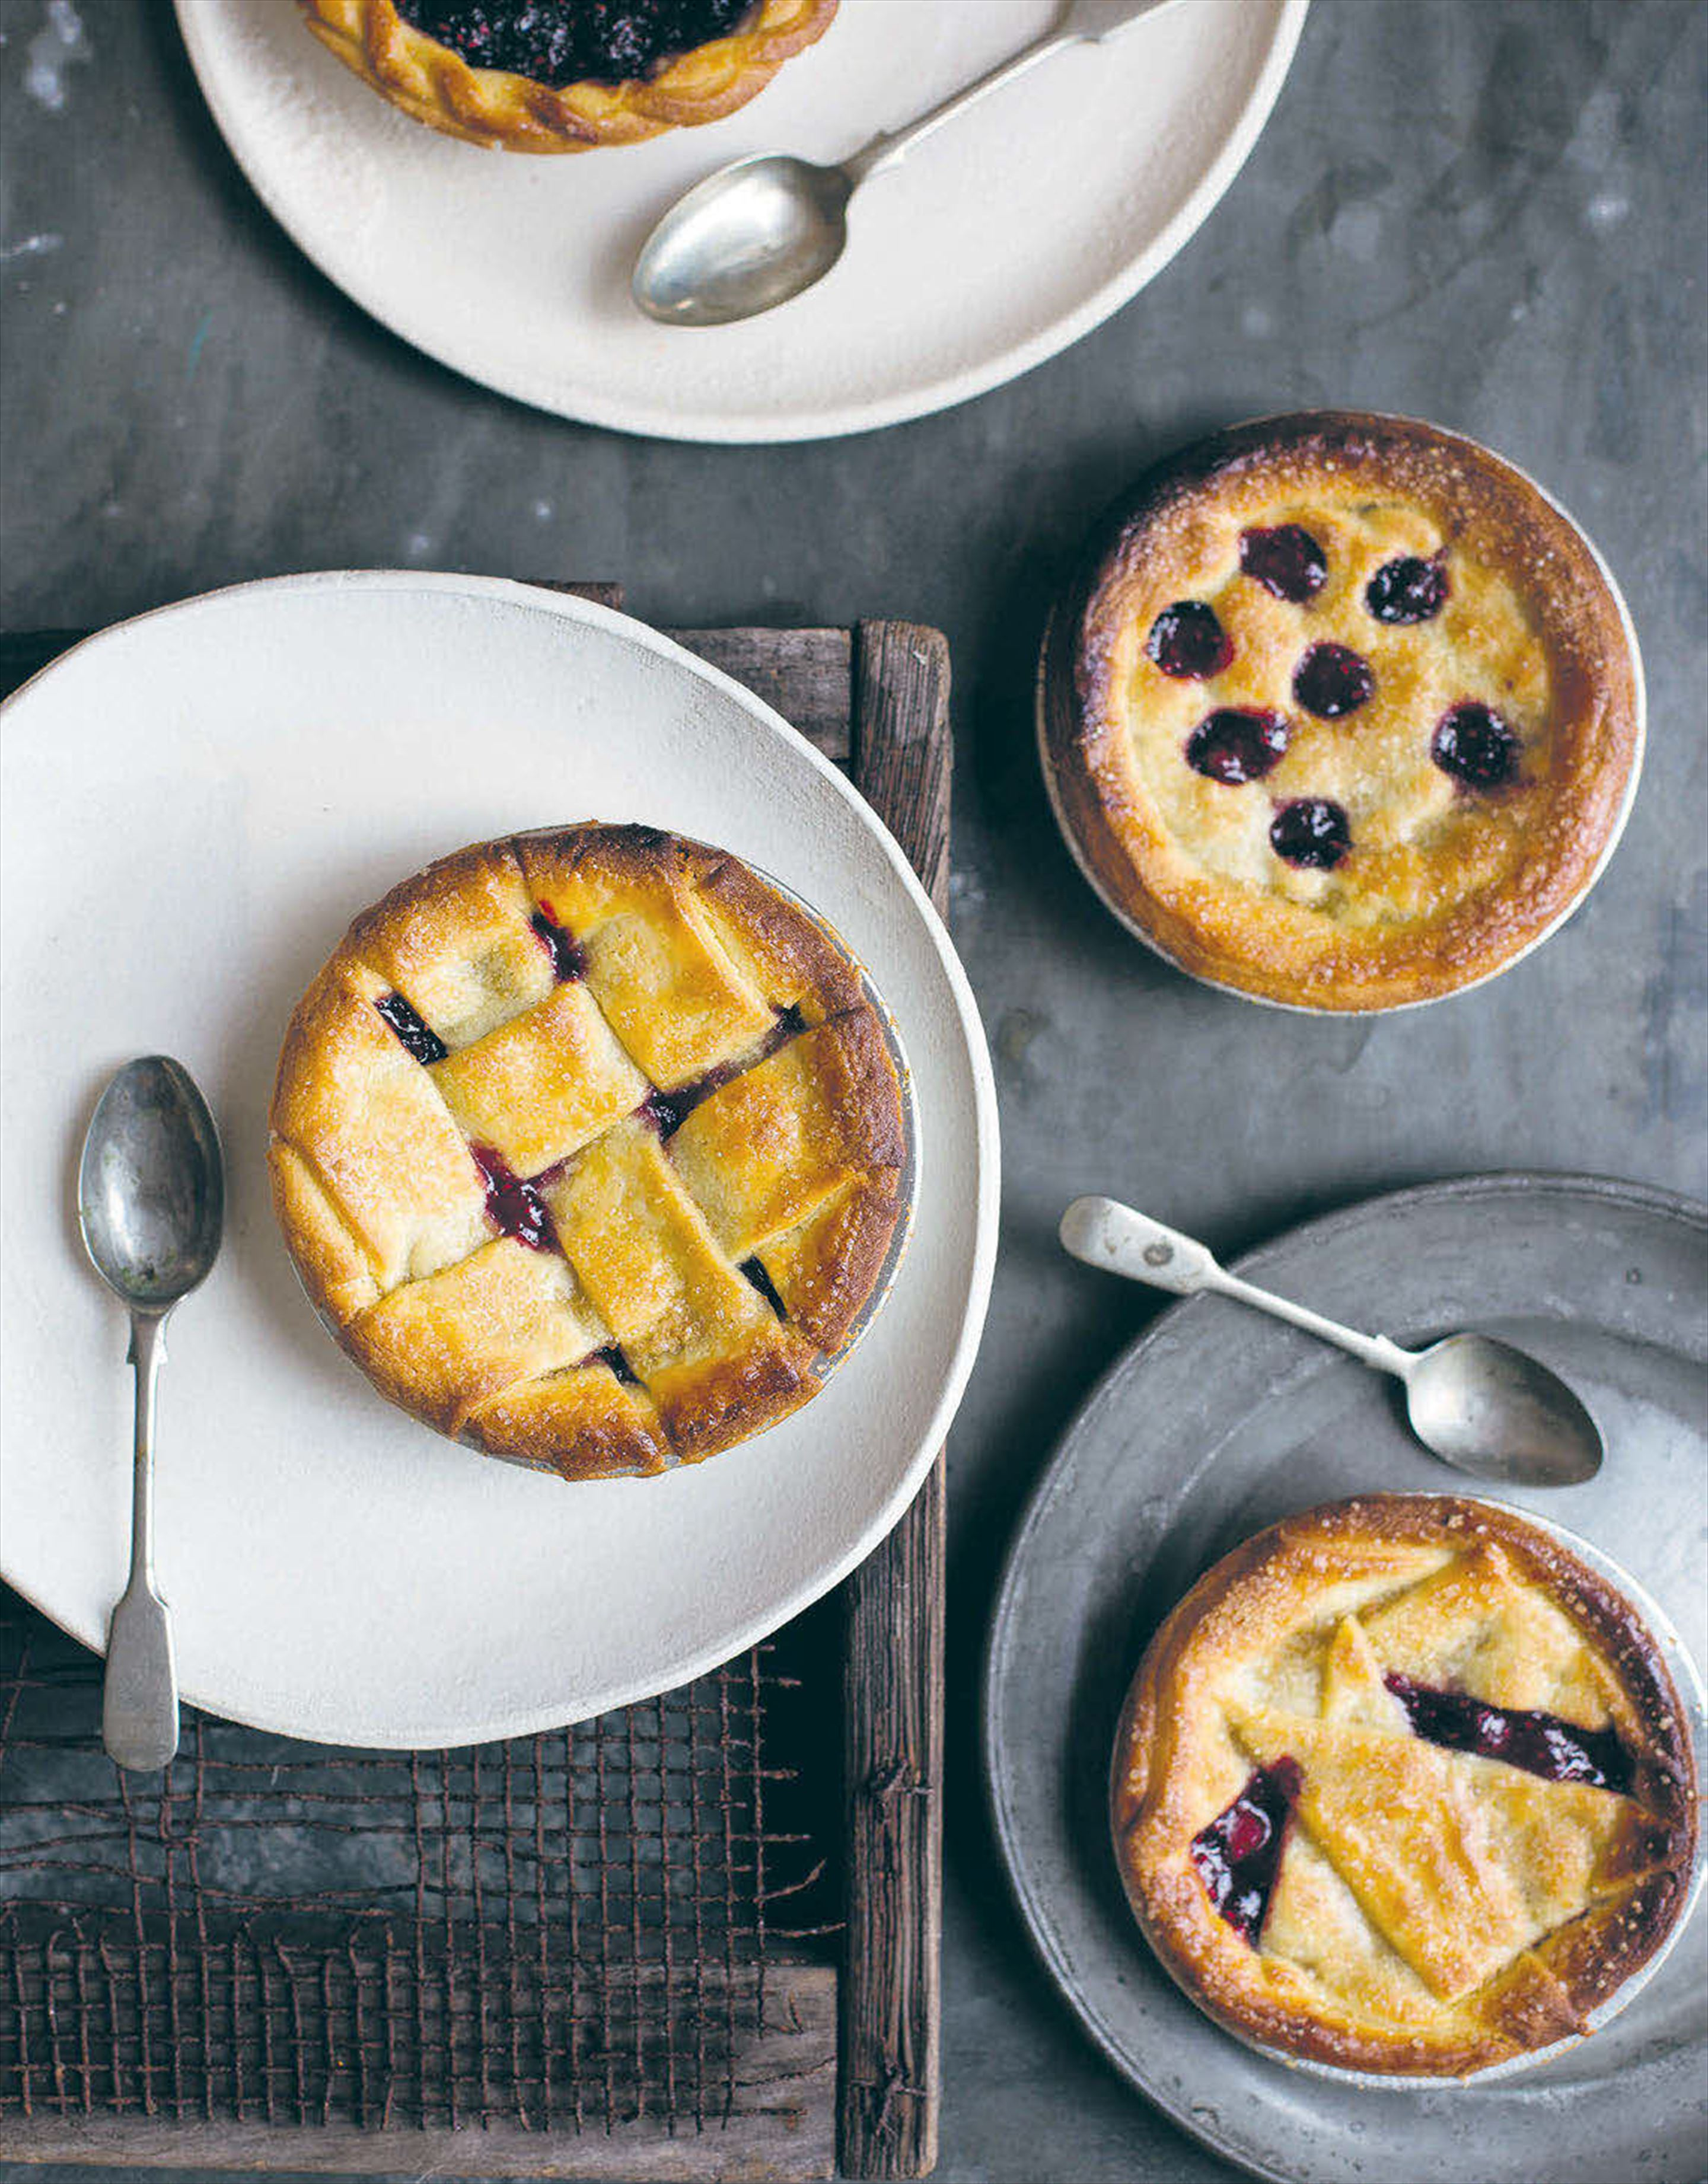 Mixed berry handpies